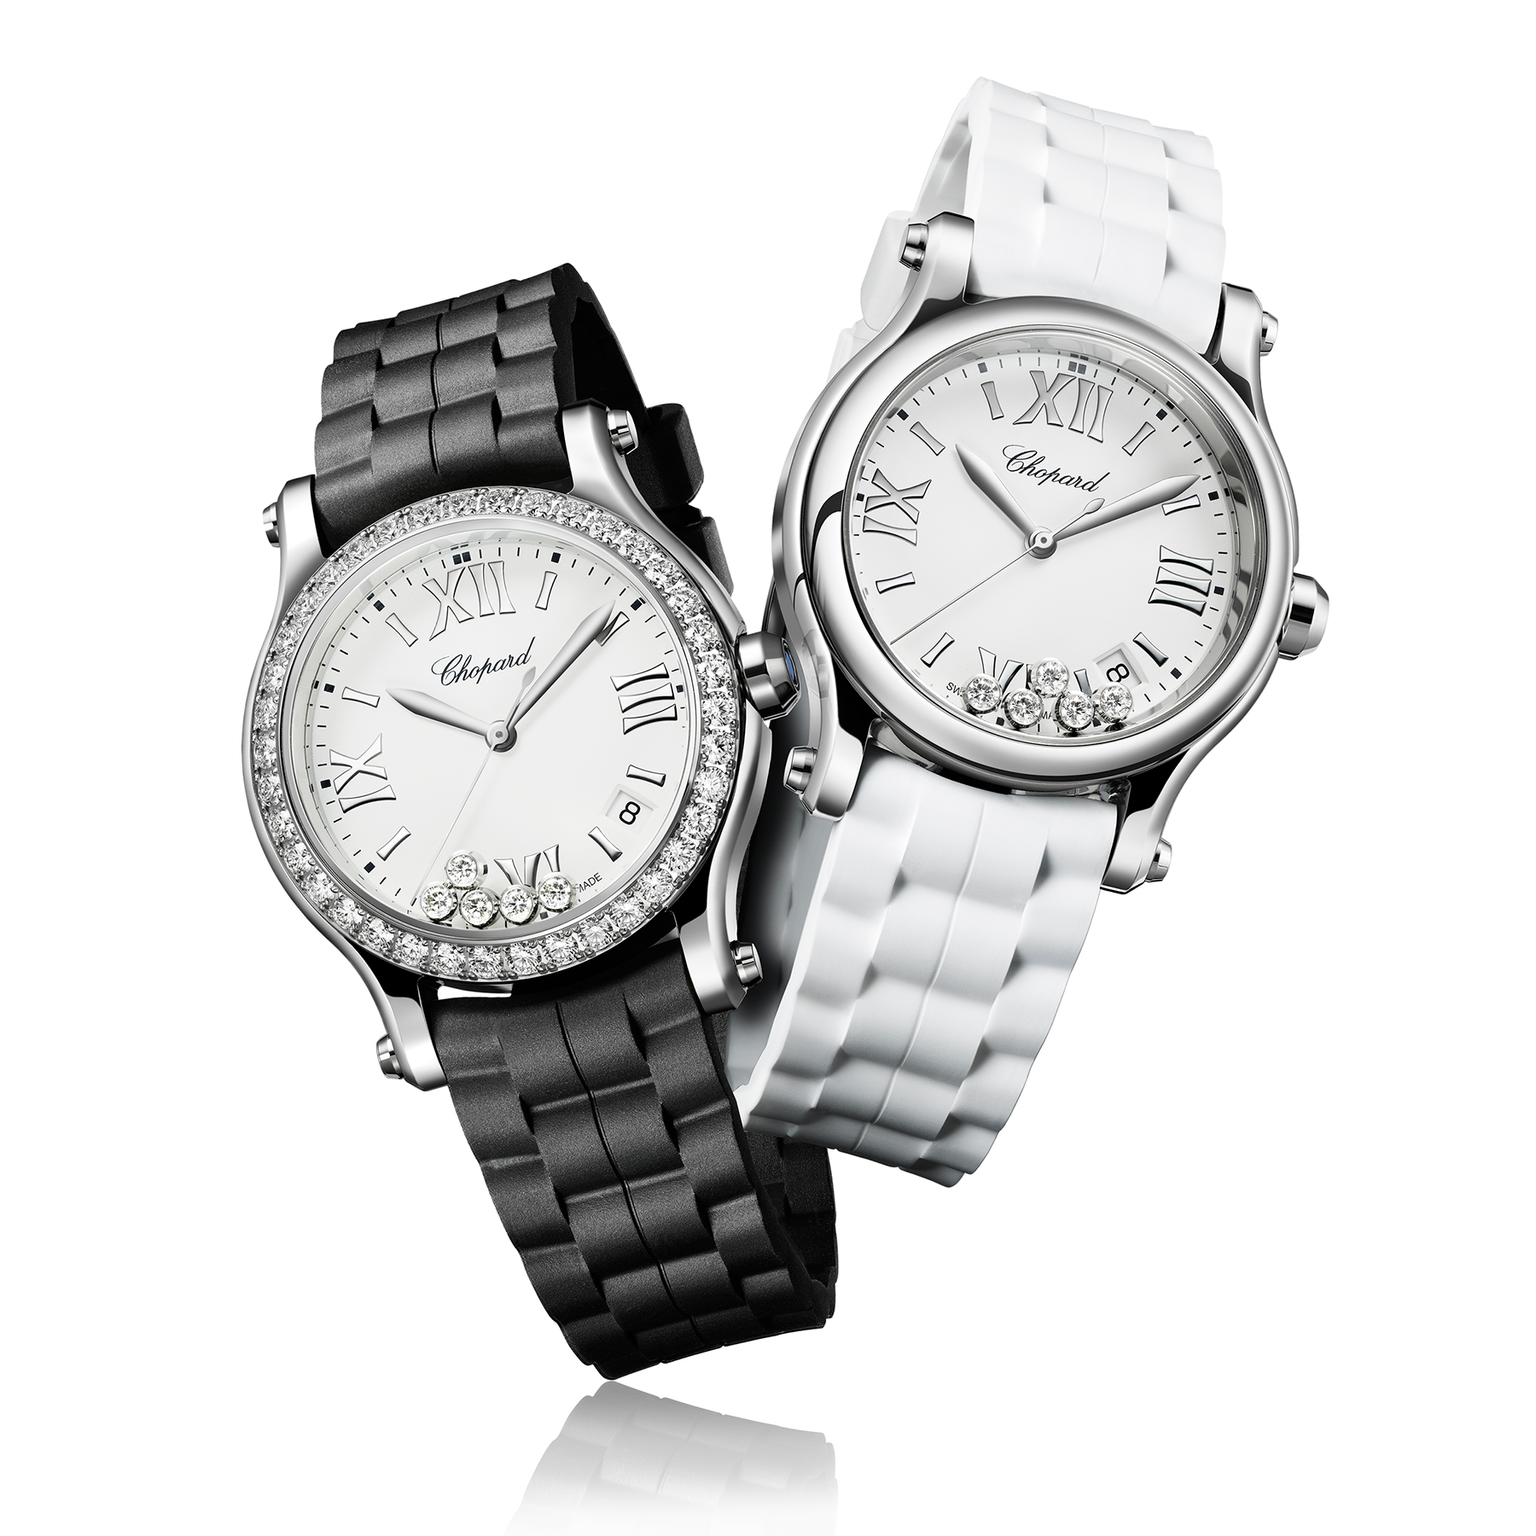 Chopard Happy Sport watches with interchangeable straps